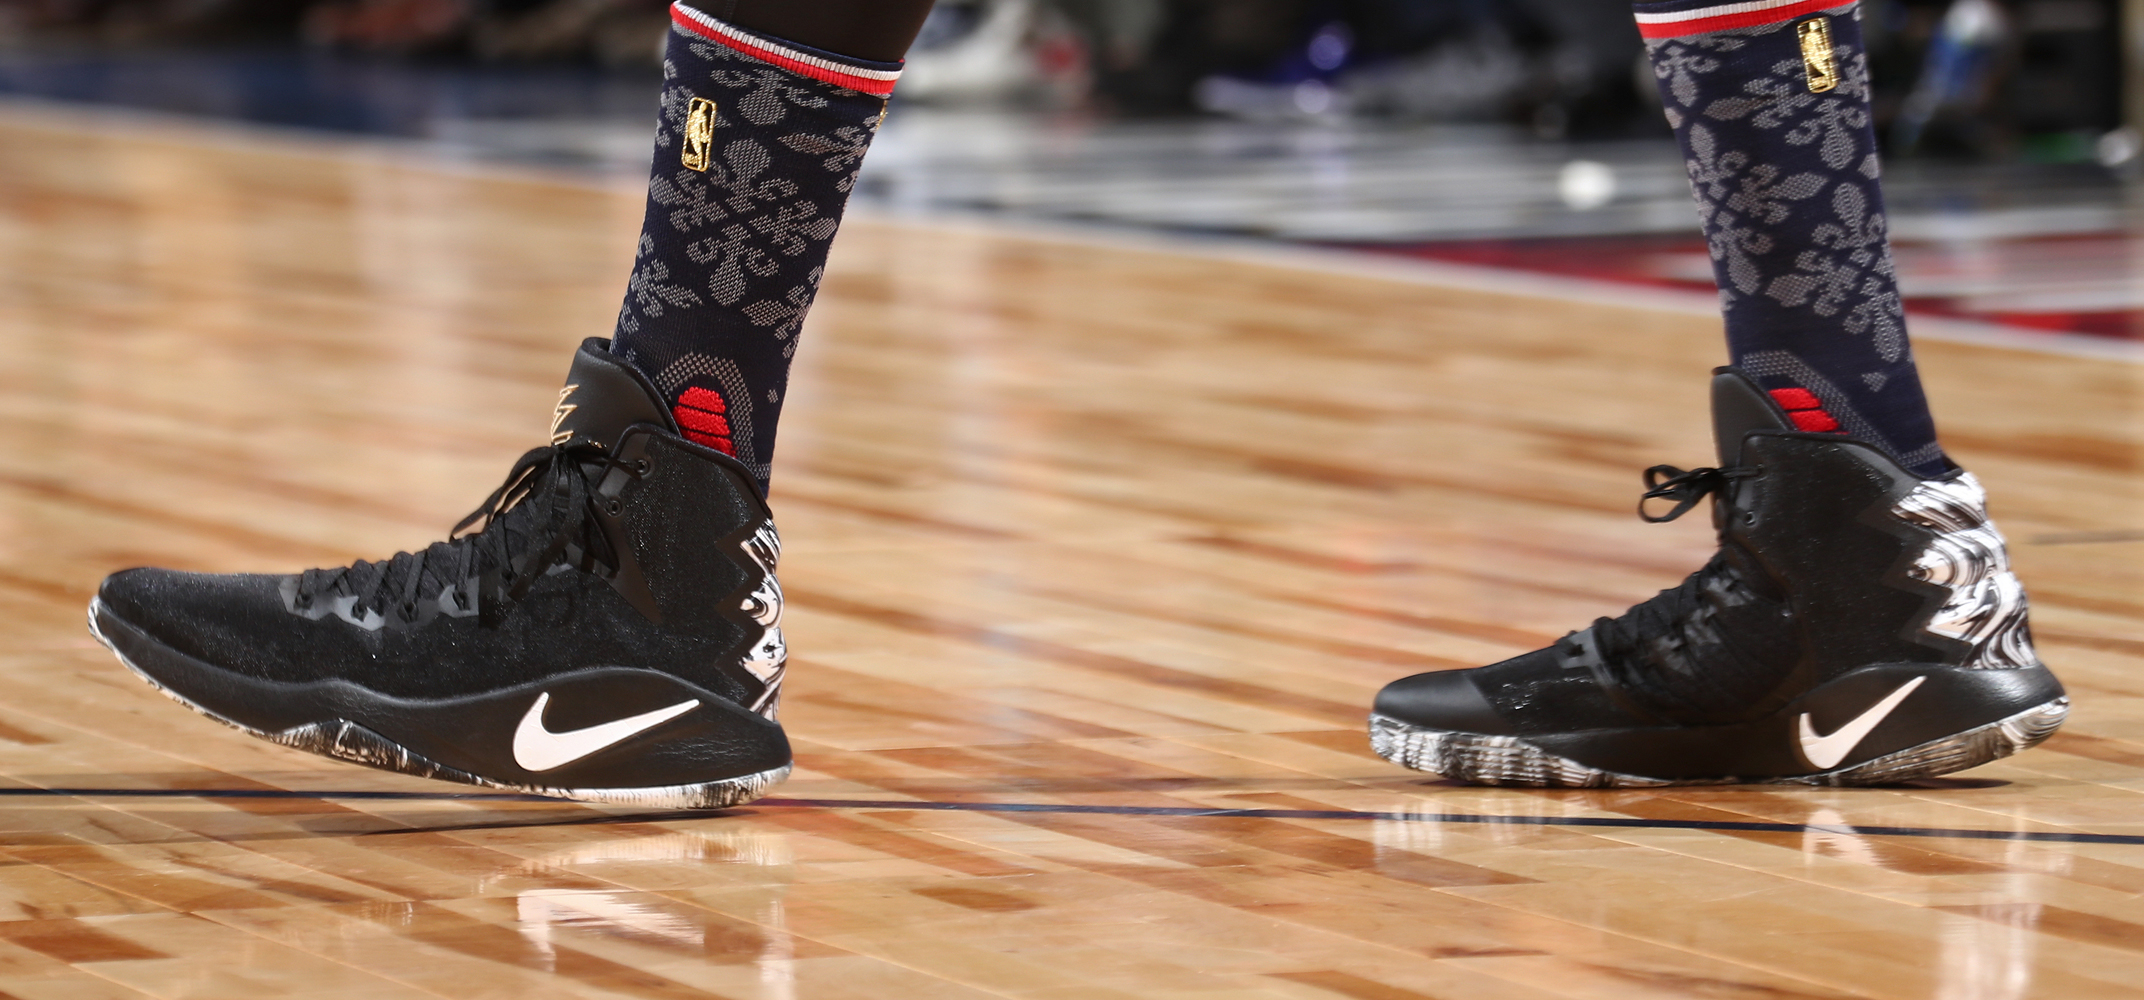 Worn by Karl-Anthony Towns during the Rising Stars Challenge